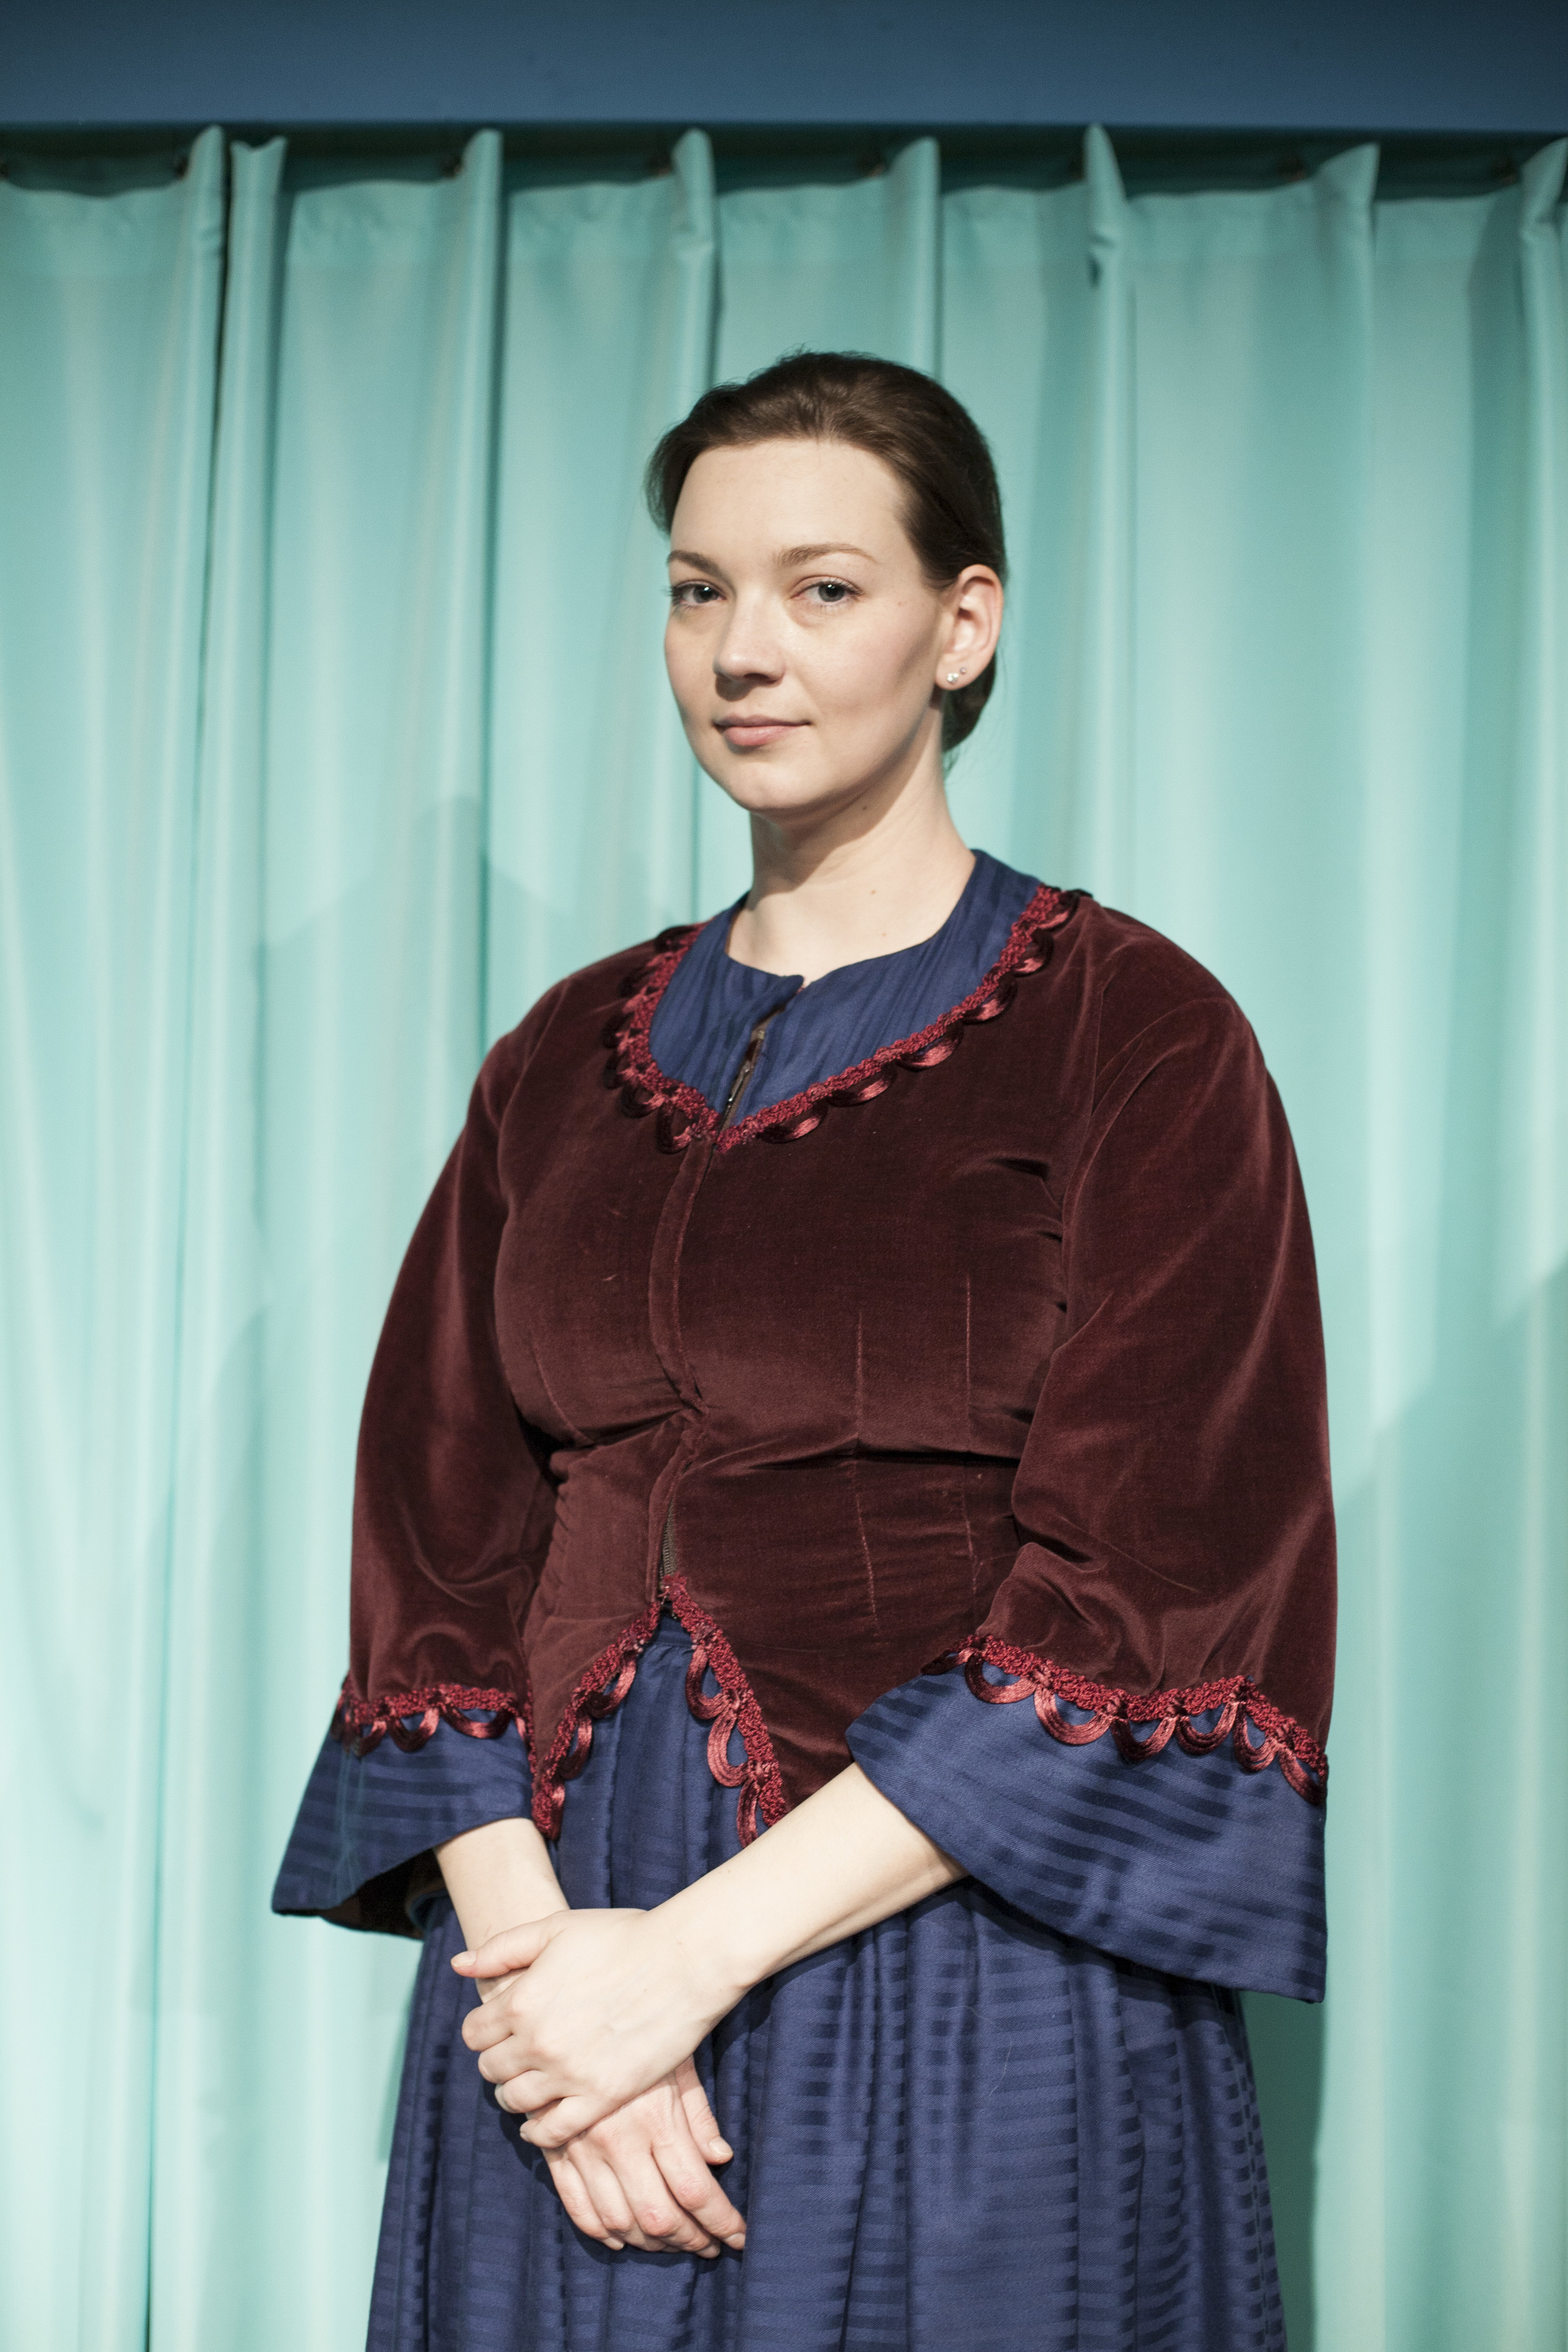 Erin Wright as Jane Eyre  | Photo Credit: Tim Song